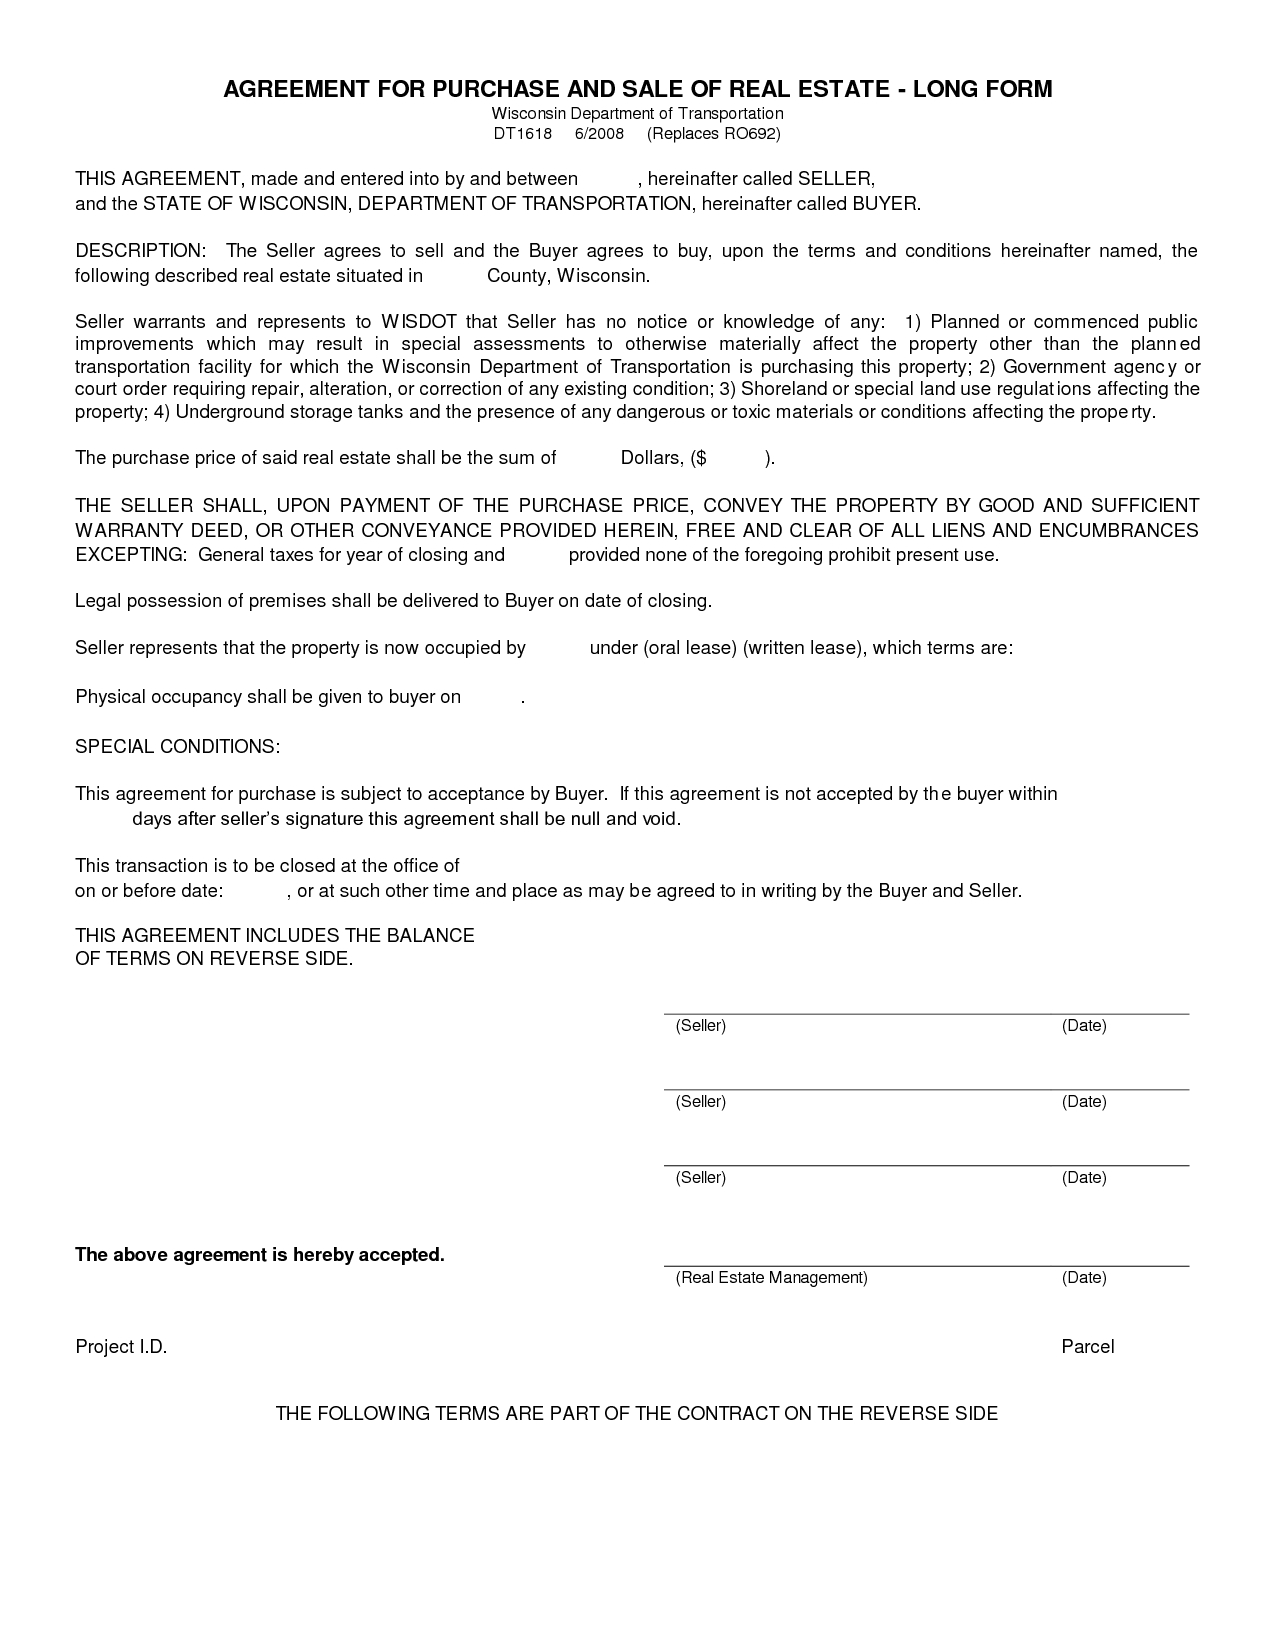 Free Blank Purchase Agreement Form Images - Agreement To Purchase - Free Printable Snow Removal Contract